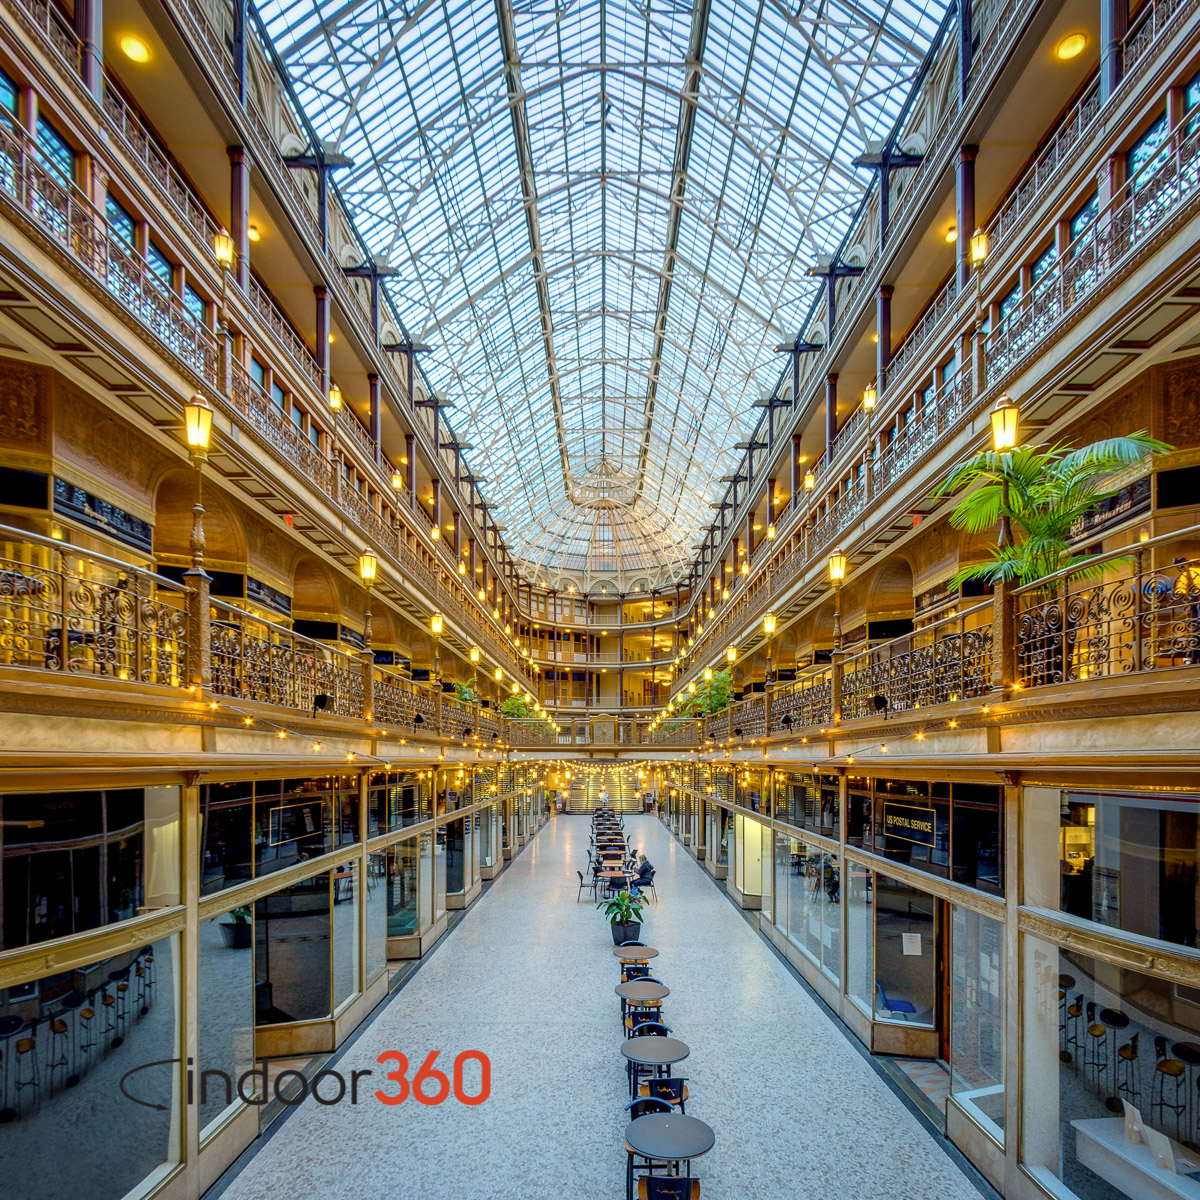 Preview image of the Arcade in Cleveland, Ohio